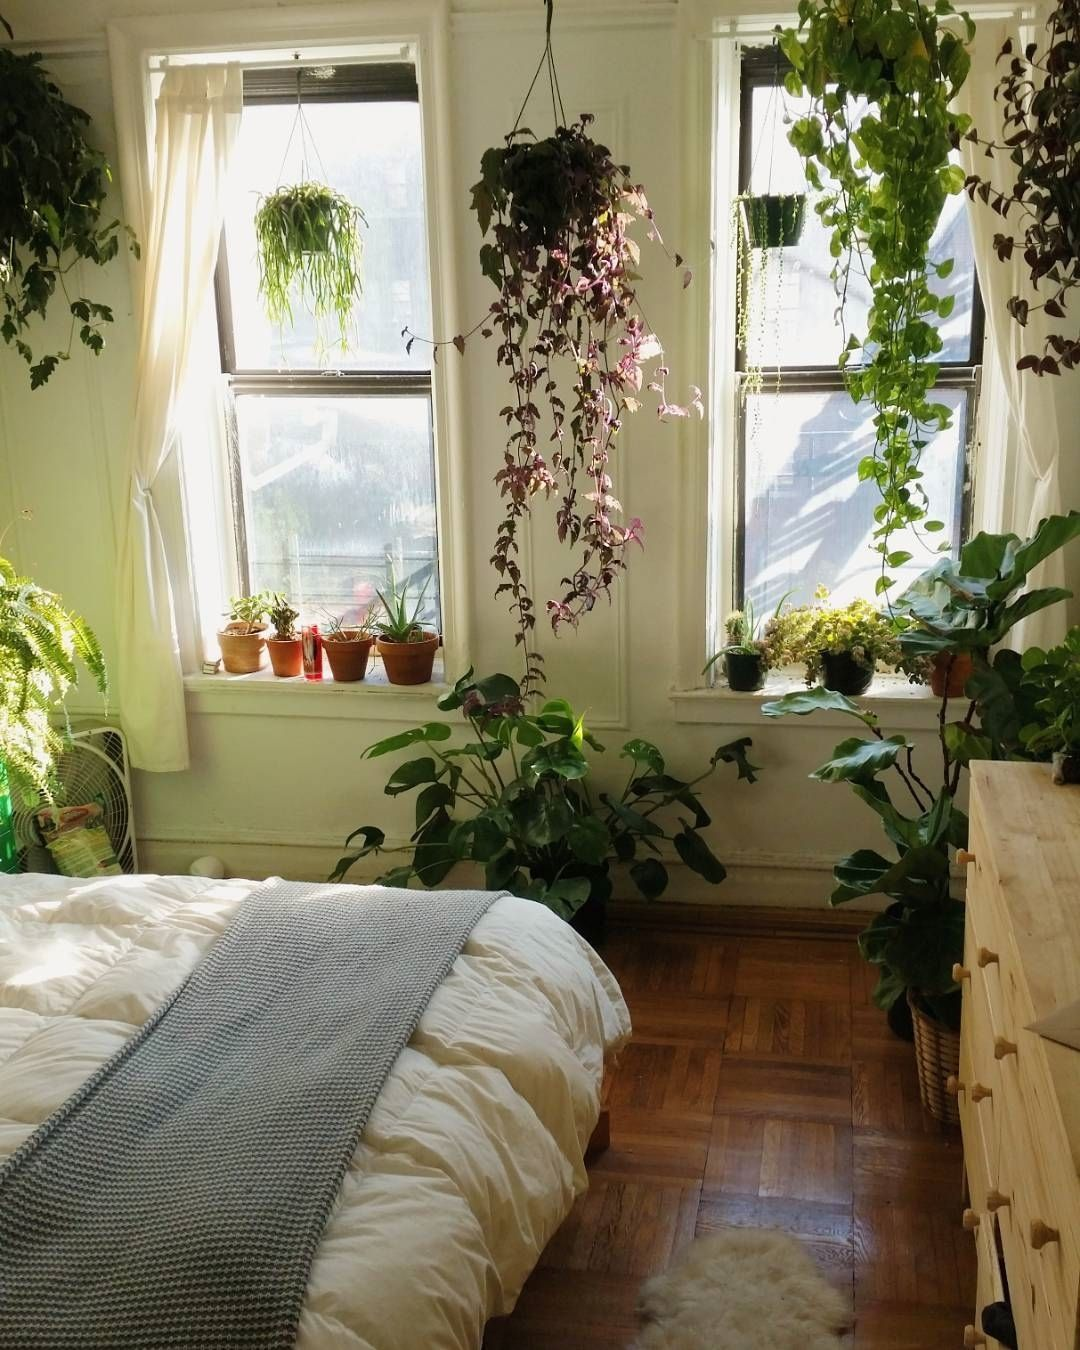 "urban jungle bloggers on instagram: ""we could stay here all sunday"